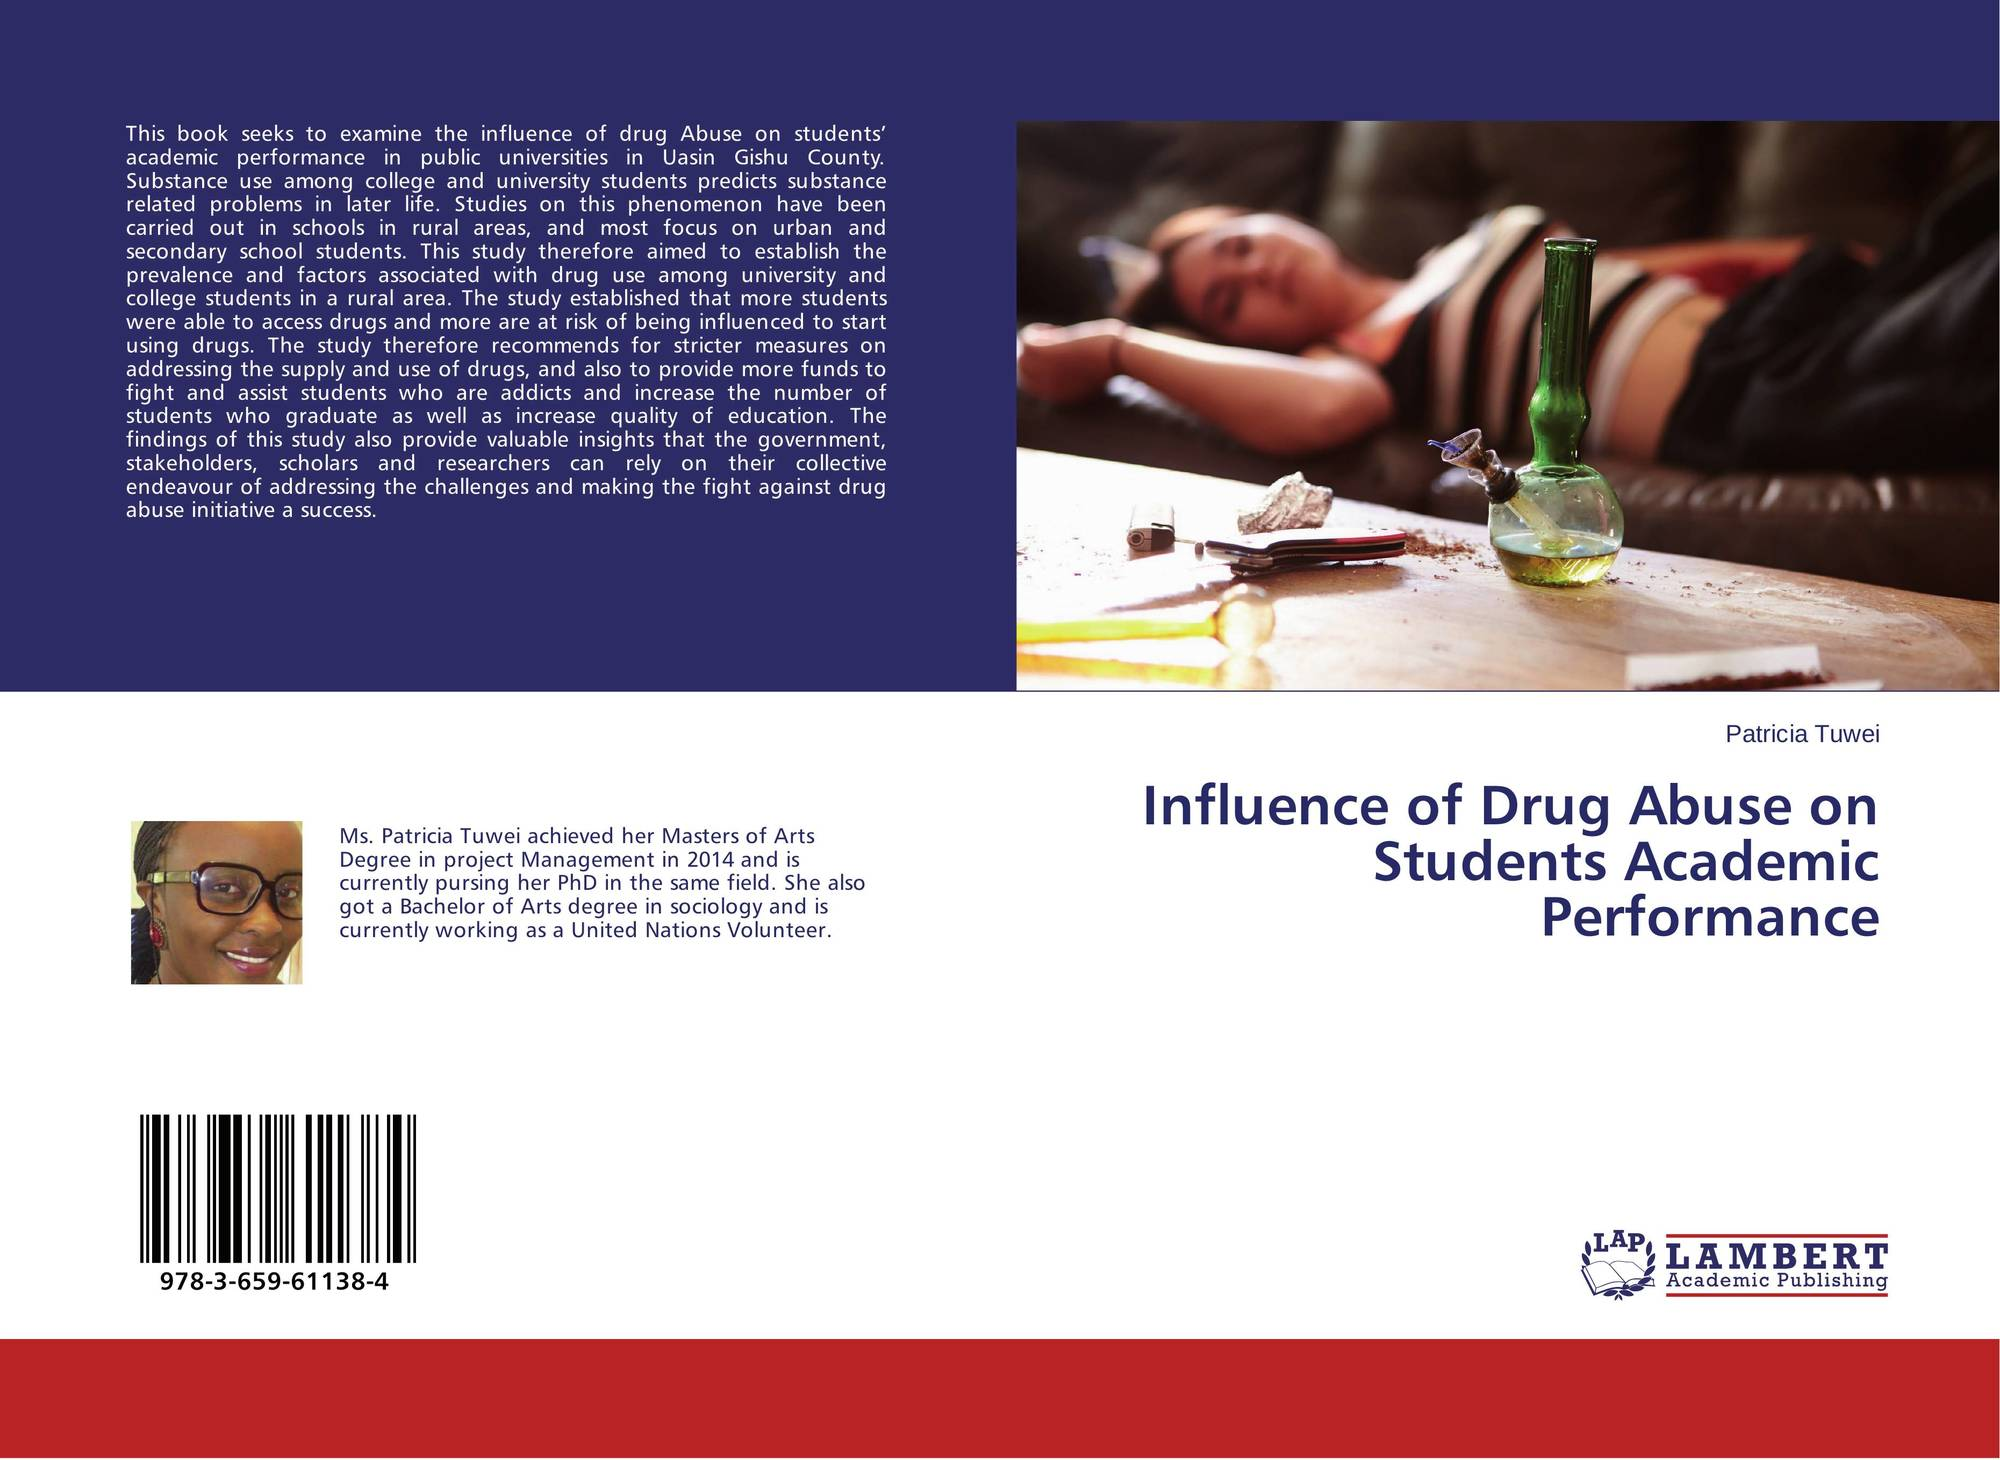 the impact of self worth on student academic performance To improve academic performance among school students, self-attitudes and participation in activities that keep schedules busy will help enforce the principal influence — time management practices [1 study of impact of time management on academic performance of college students.